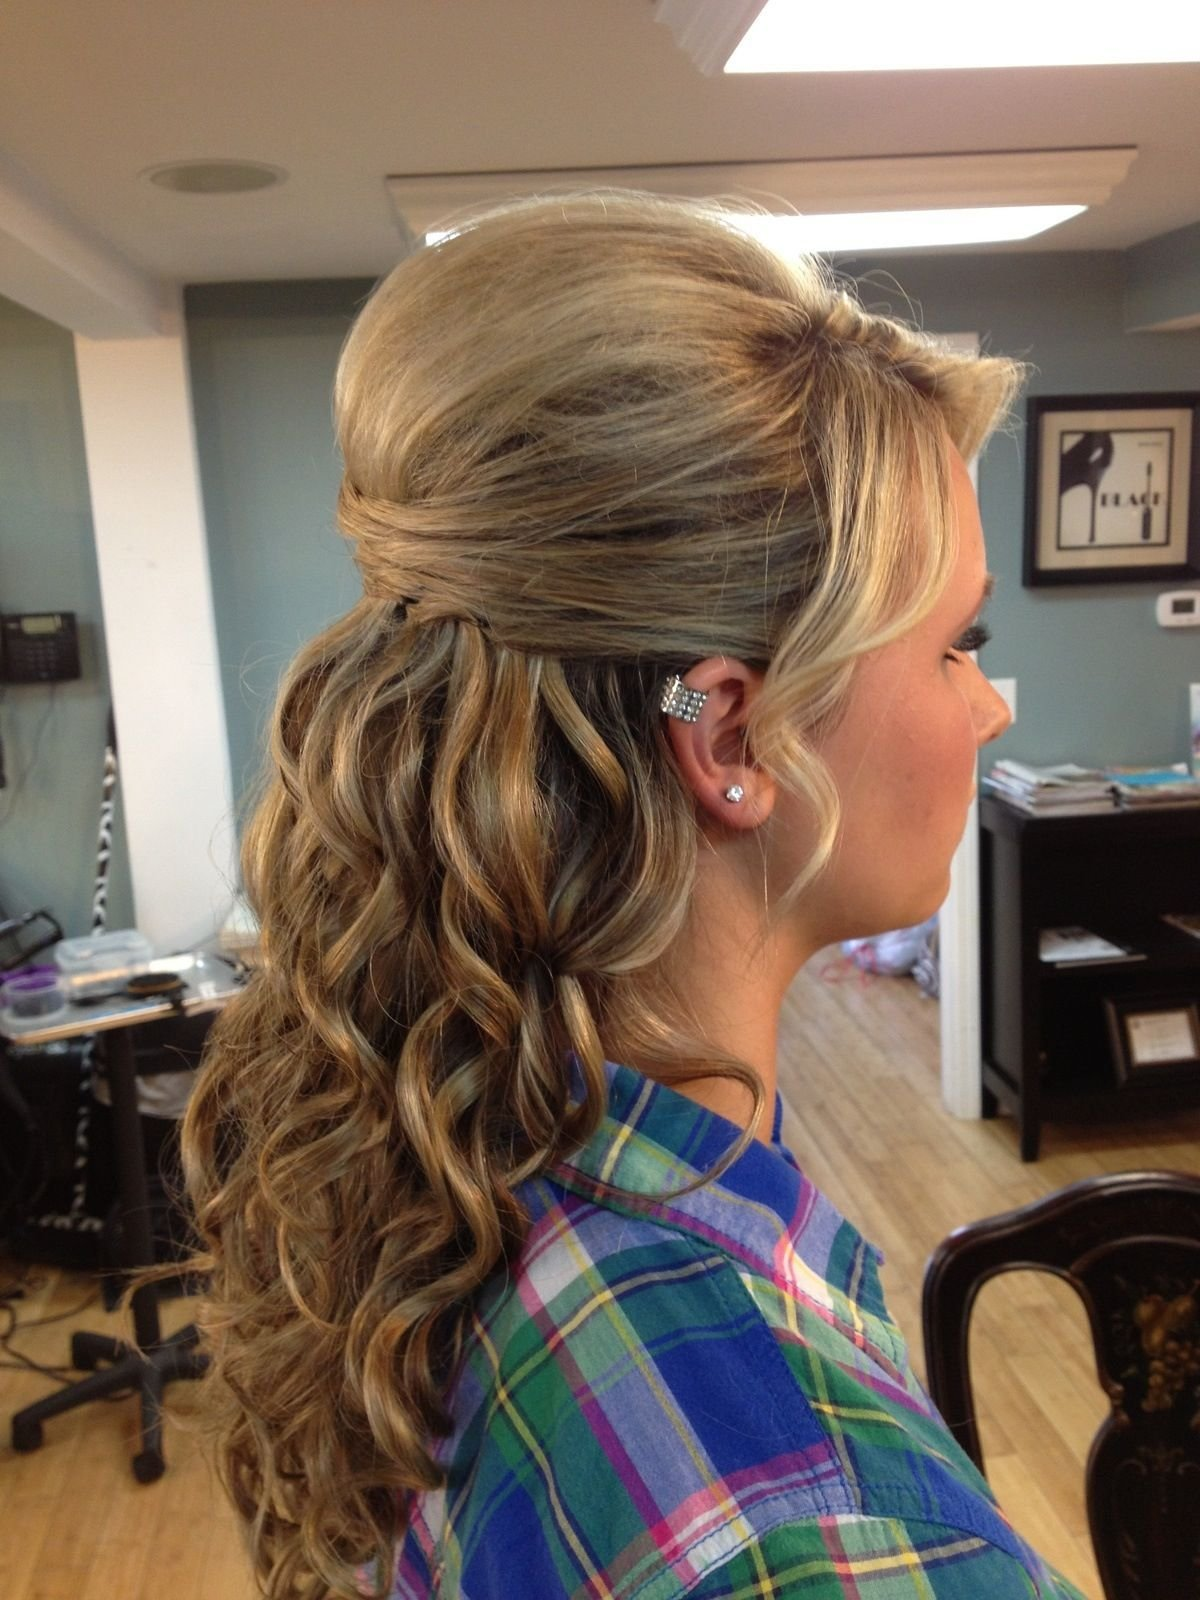 The Best Grad Hair So Excited Hair Pinterest Pictures